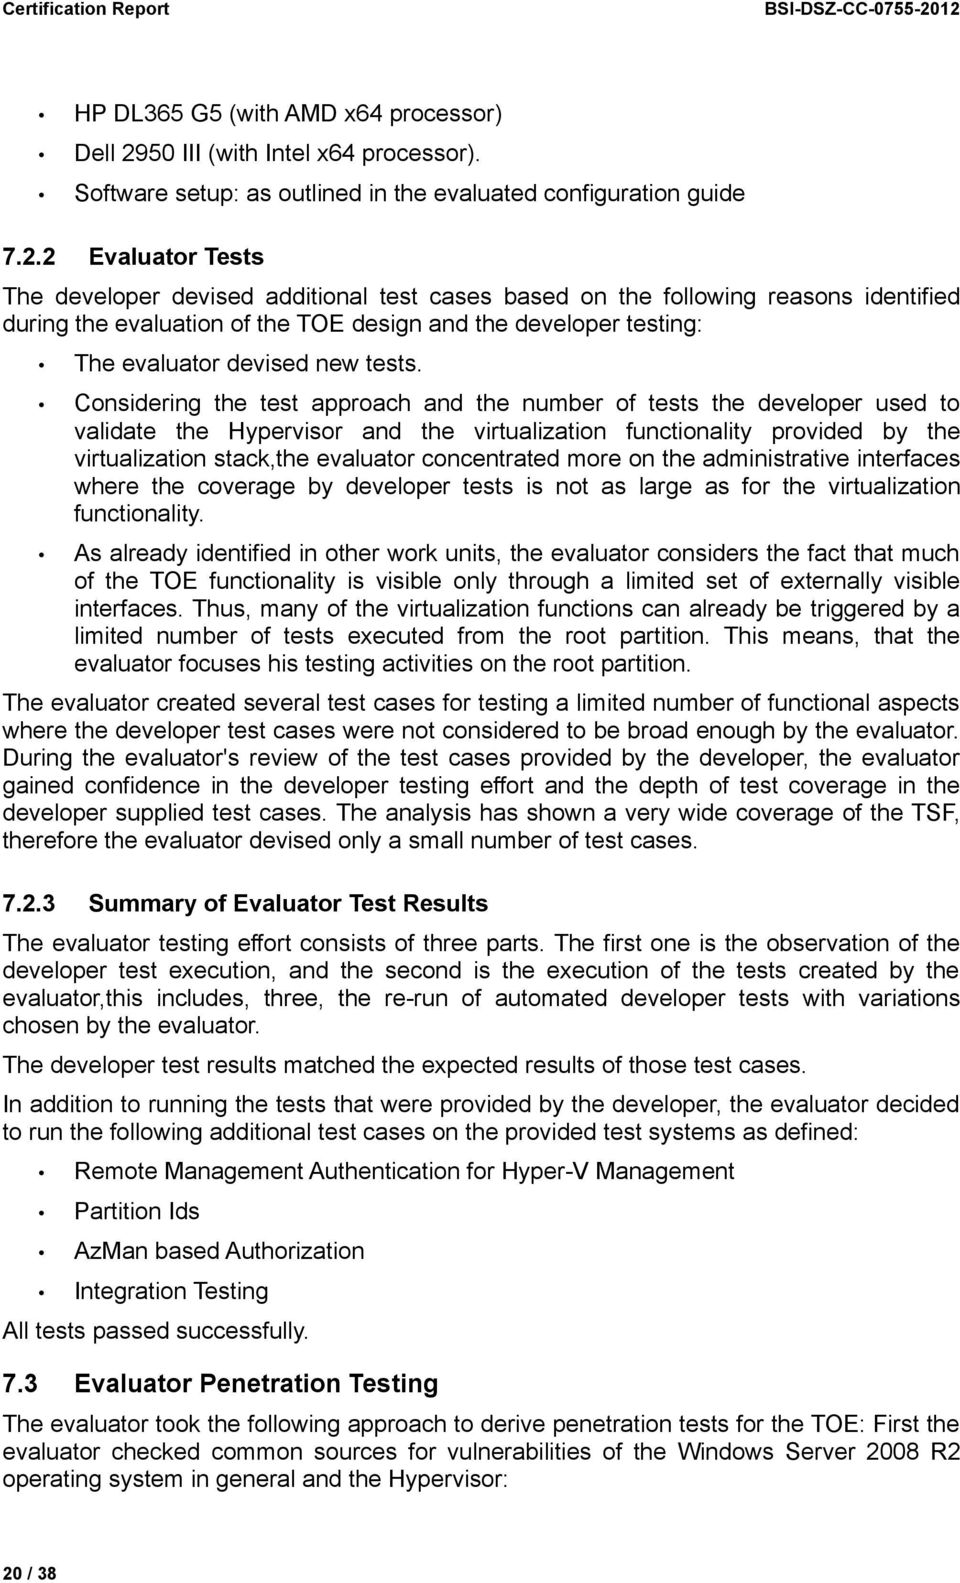 additional test cases based on the following reasons identified during the evaluation of the TOE design and the developer testing: The evaluator devised new tests.